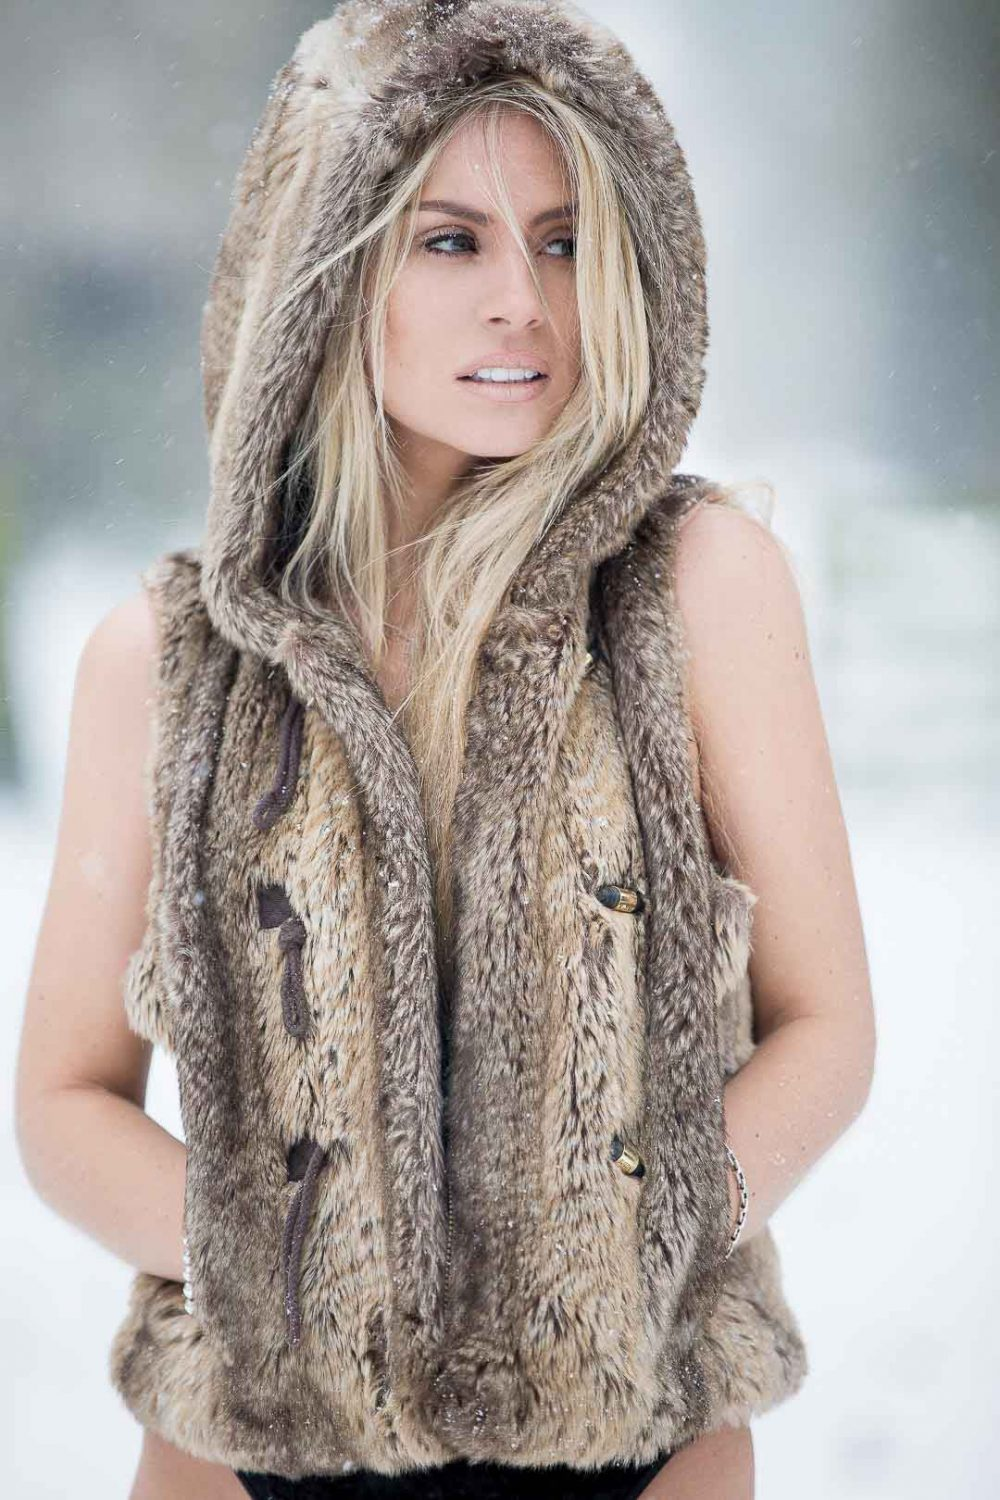 model-campaign-snow-shoot-beauty-photographer